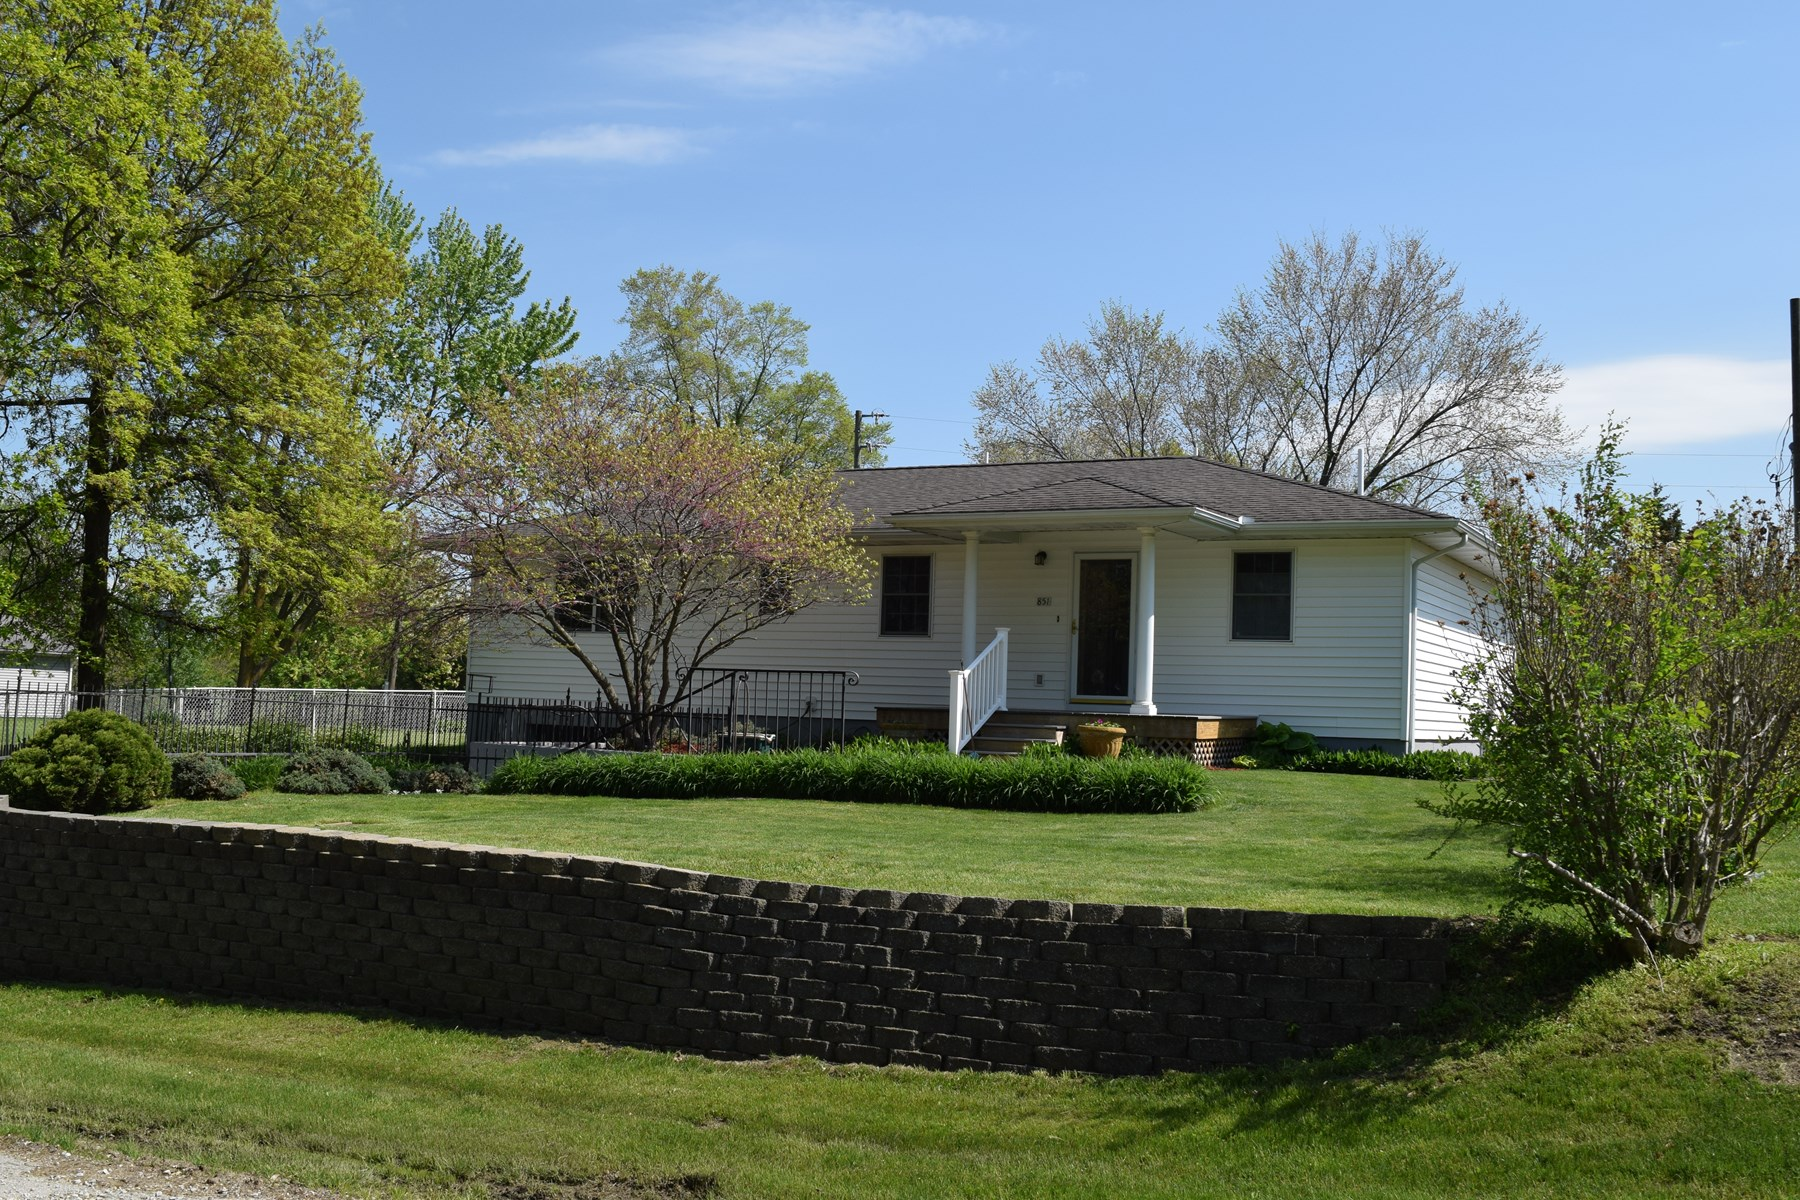 Move in ready ranch house in town for sale in Unionville, MO